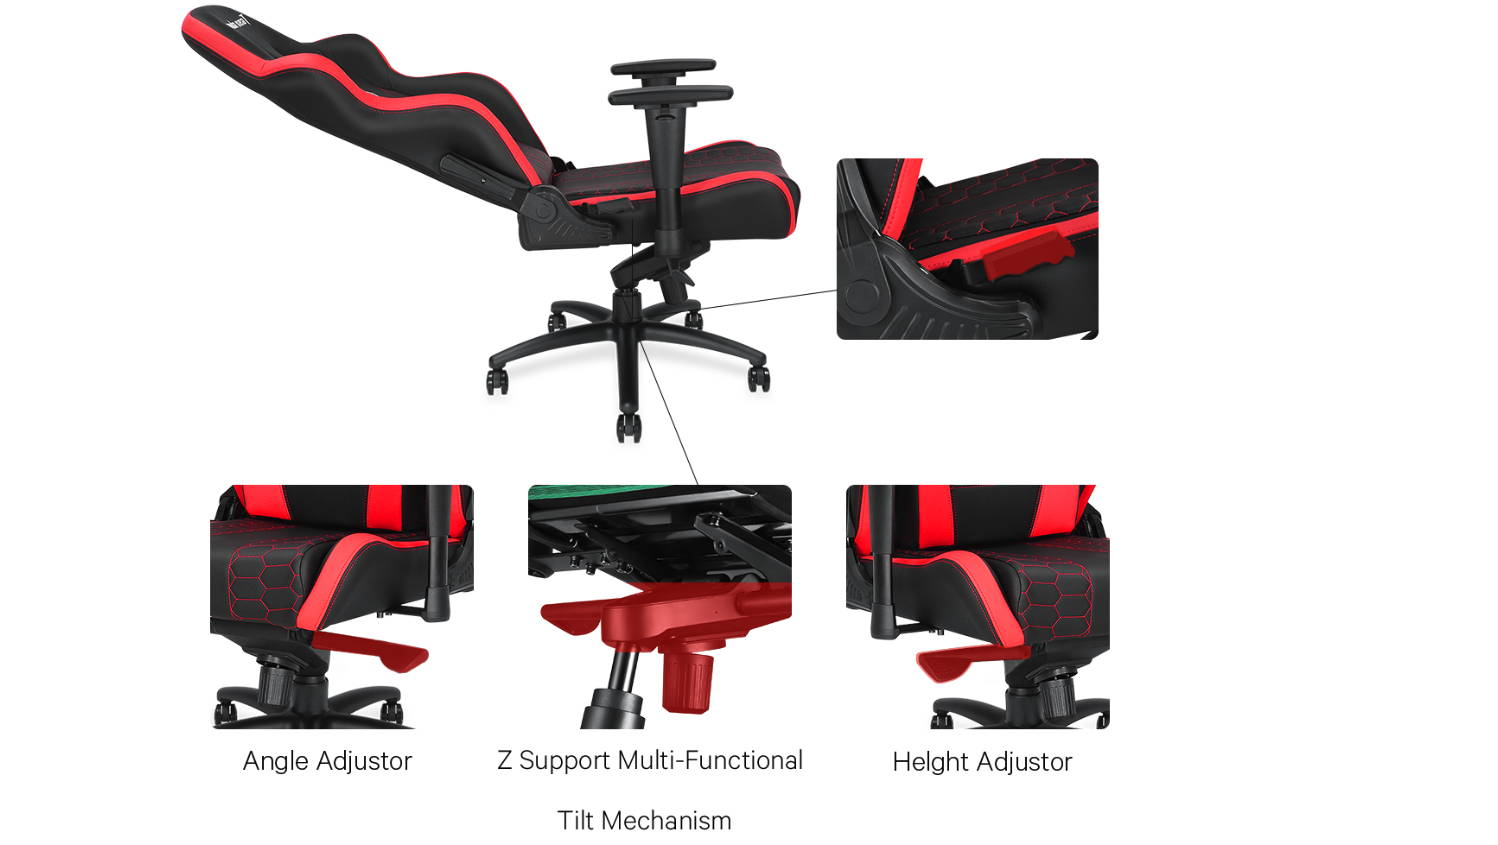 Ergonomic & Comfortable chair